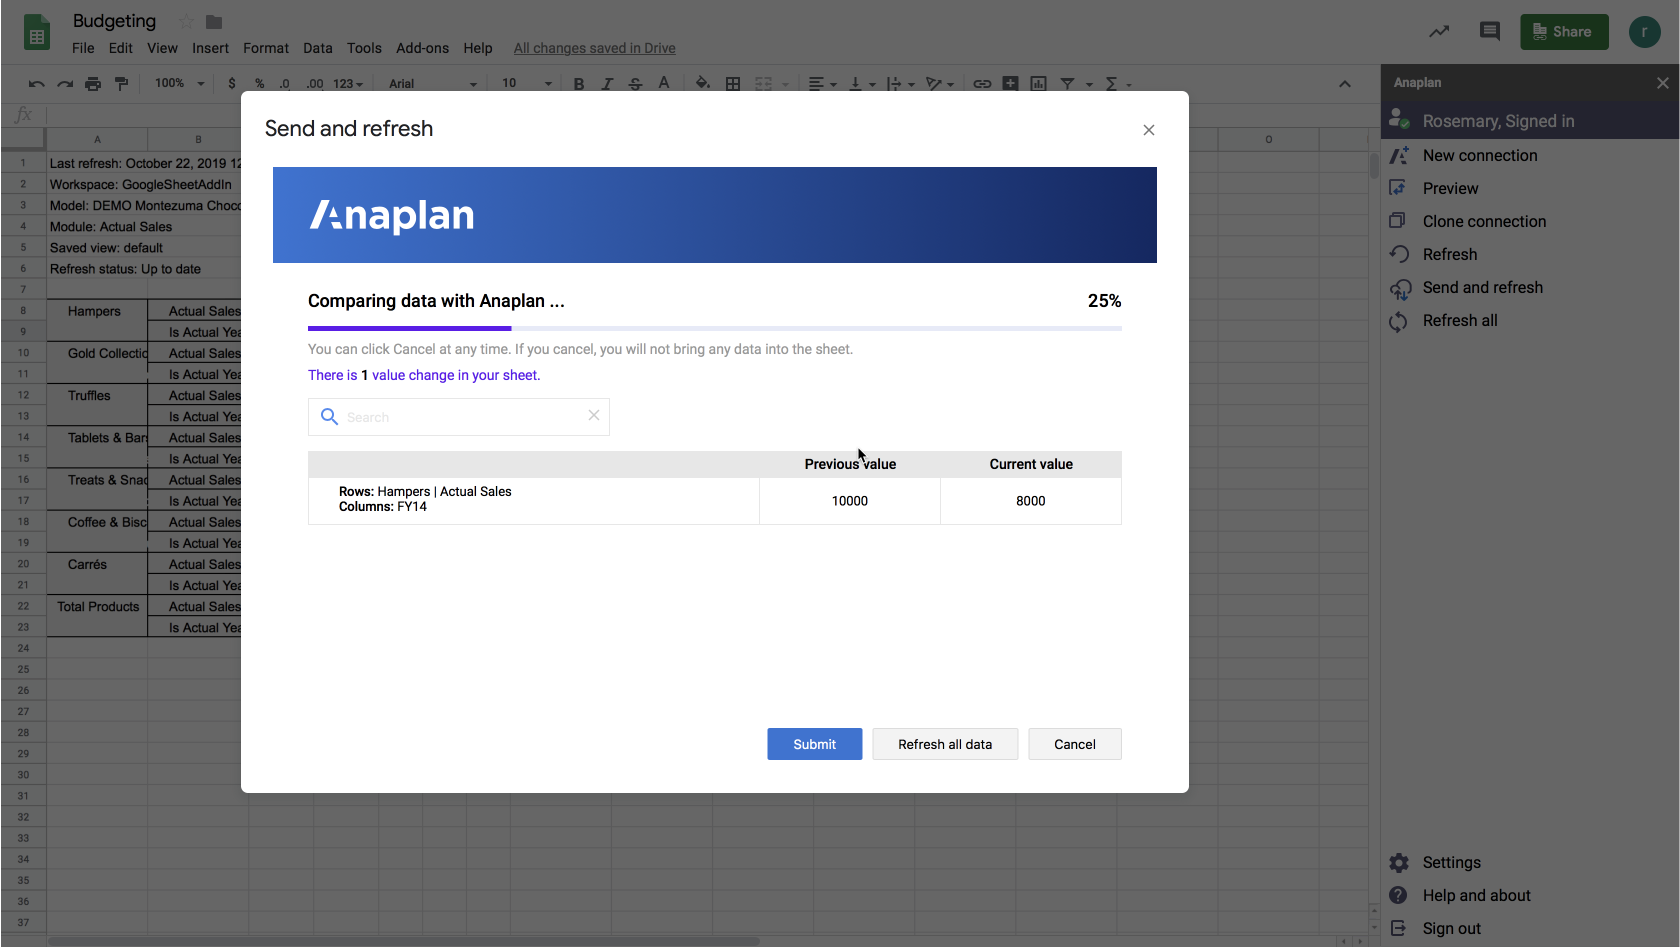 The Google Sheets Add-on with the Send and refresh dialog open. The status reads: Comparing data with Anaplan. A table displays value changes with a description of the cell in the first column, the Previous value in the second column, and the Current value in the third column.